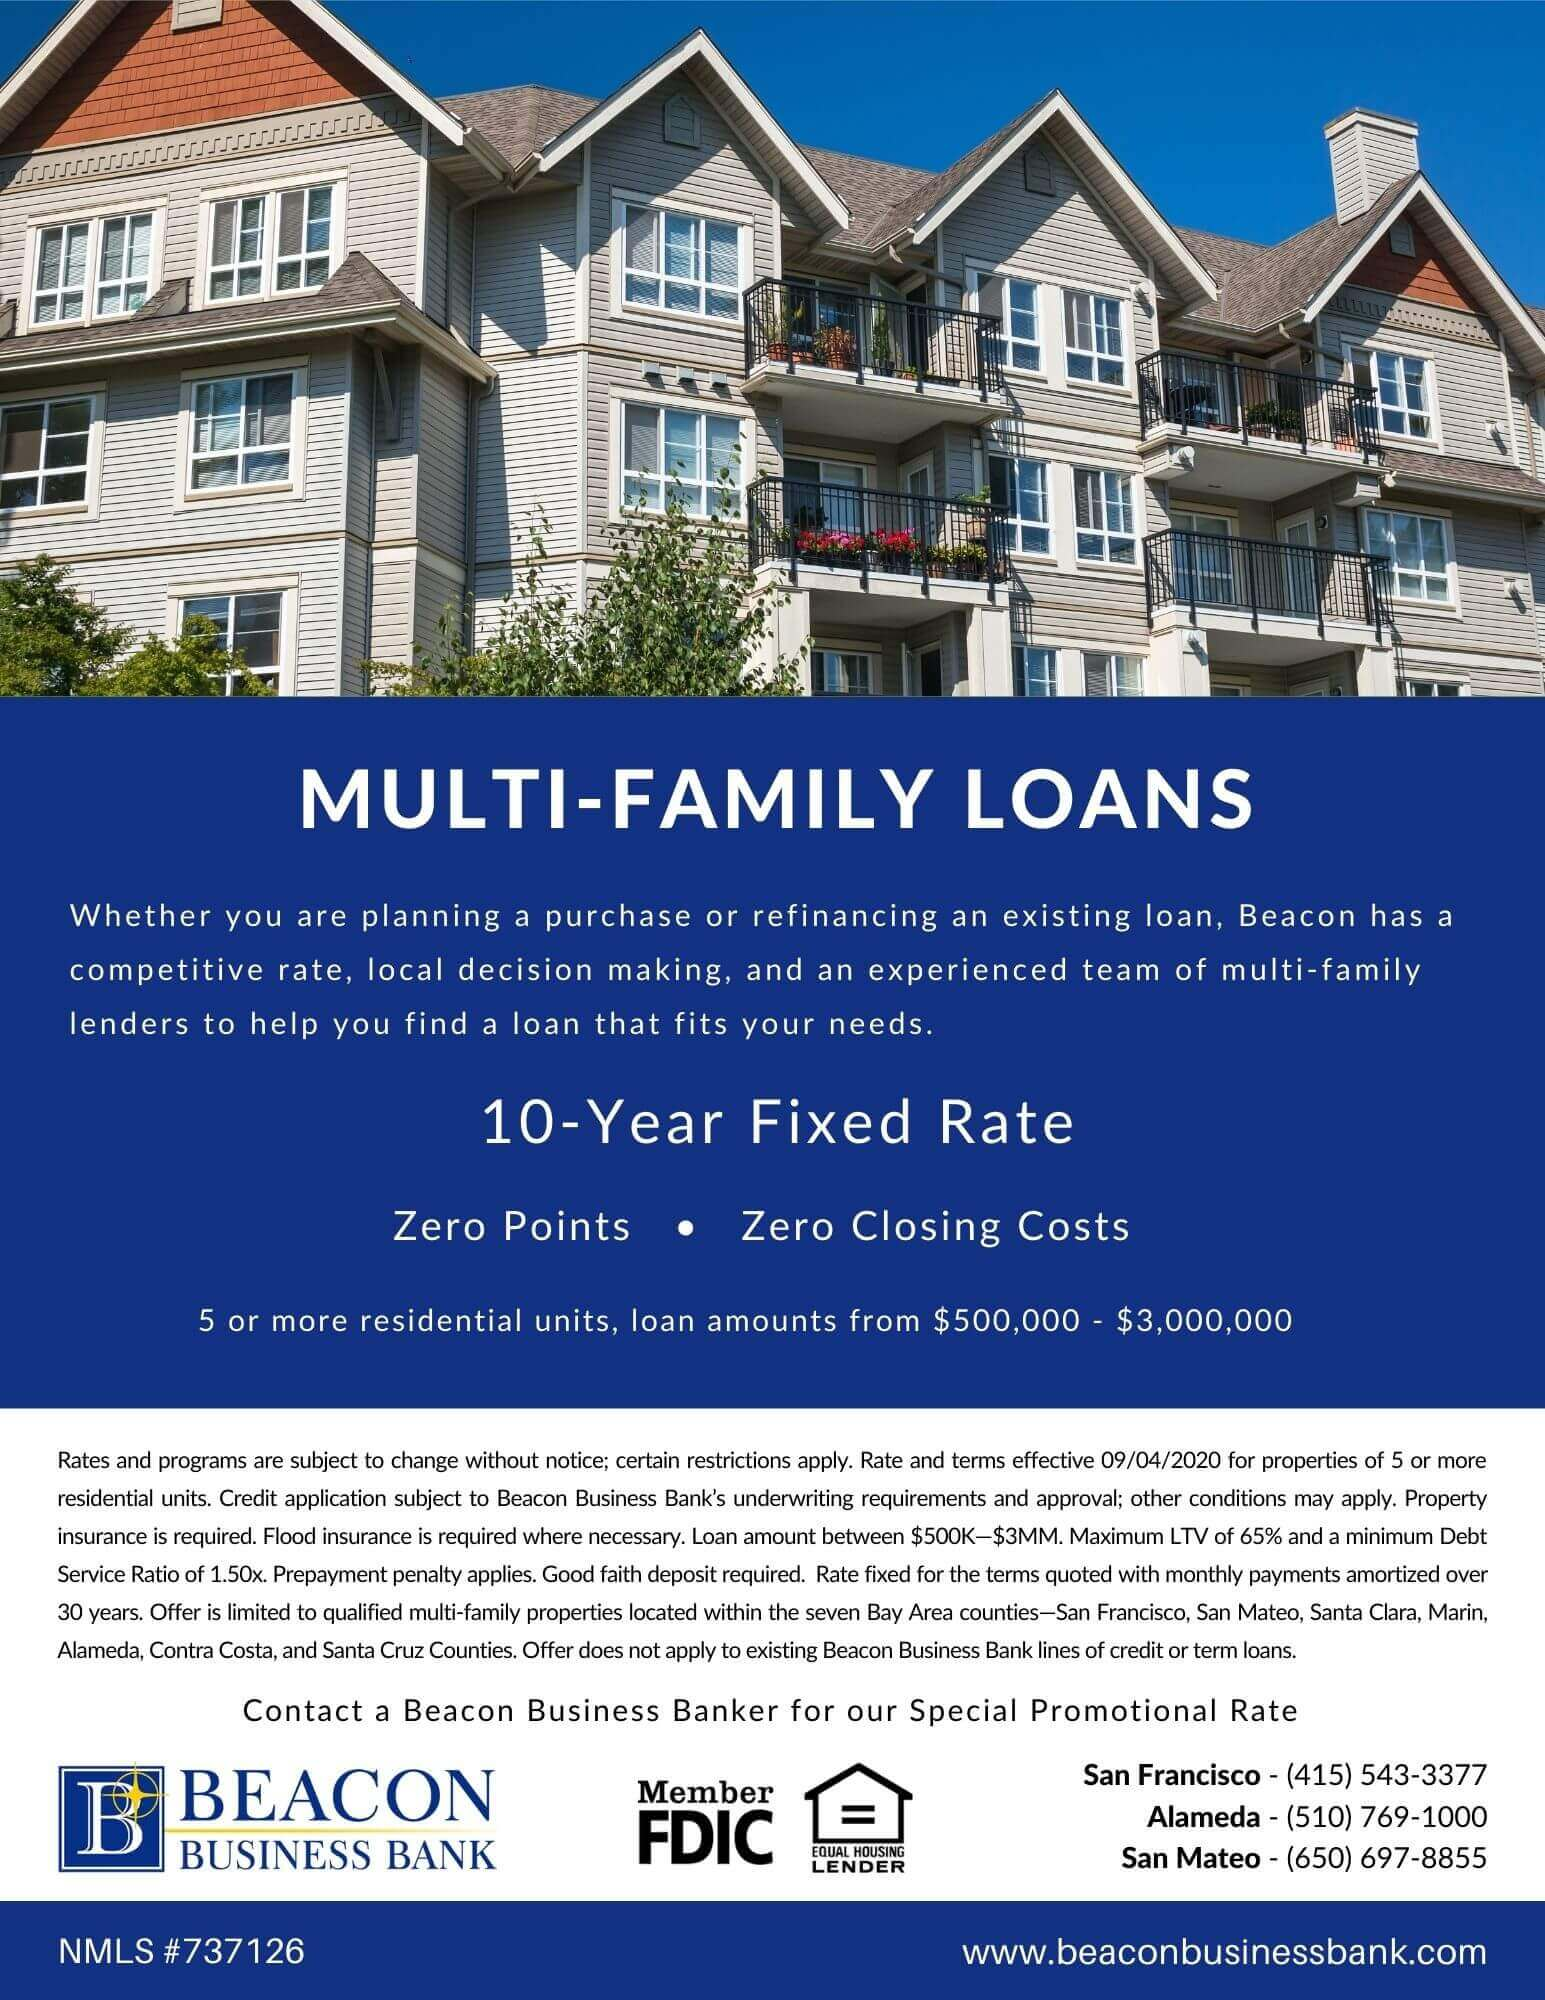 image of a multi-family loan promotion  with a photo of an apartment building.